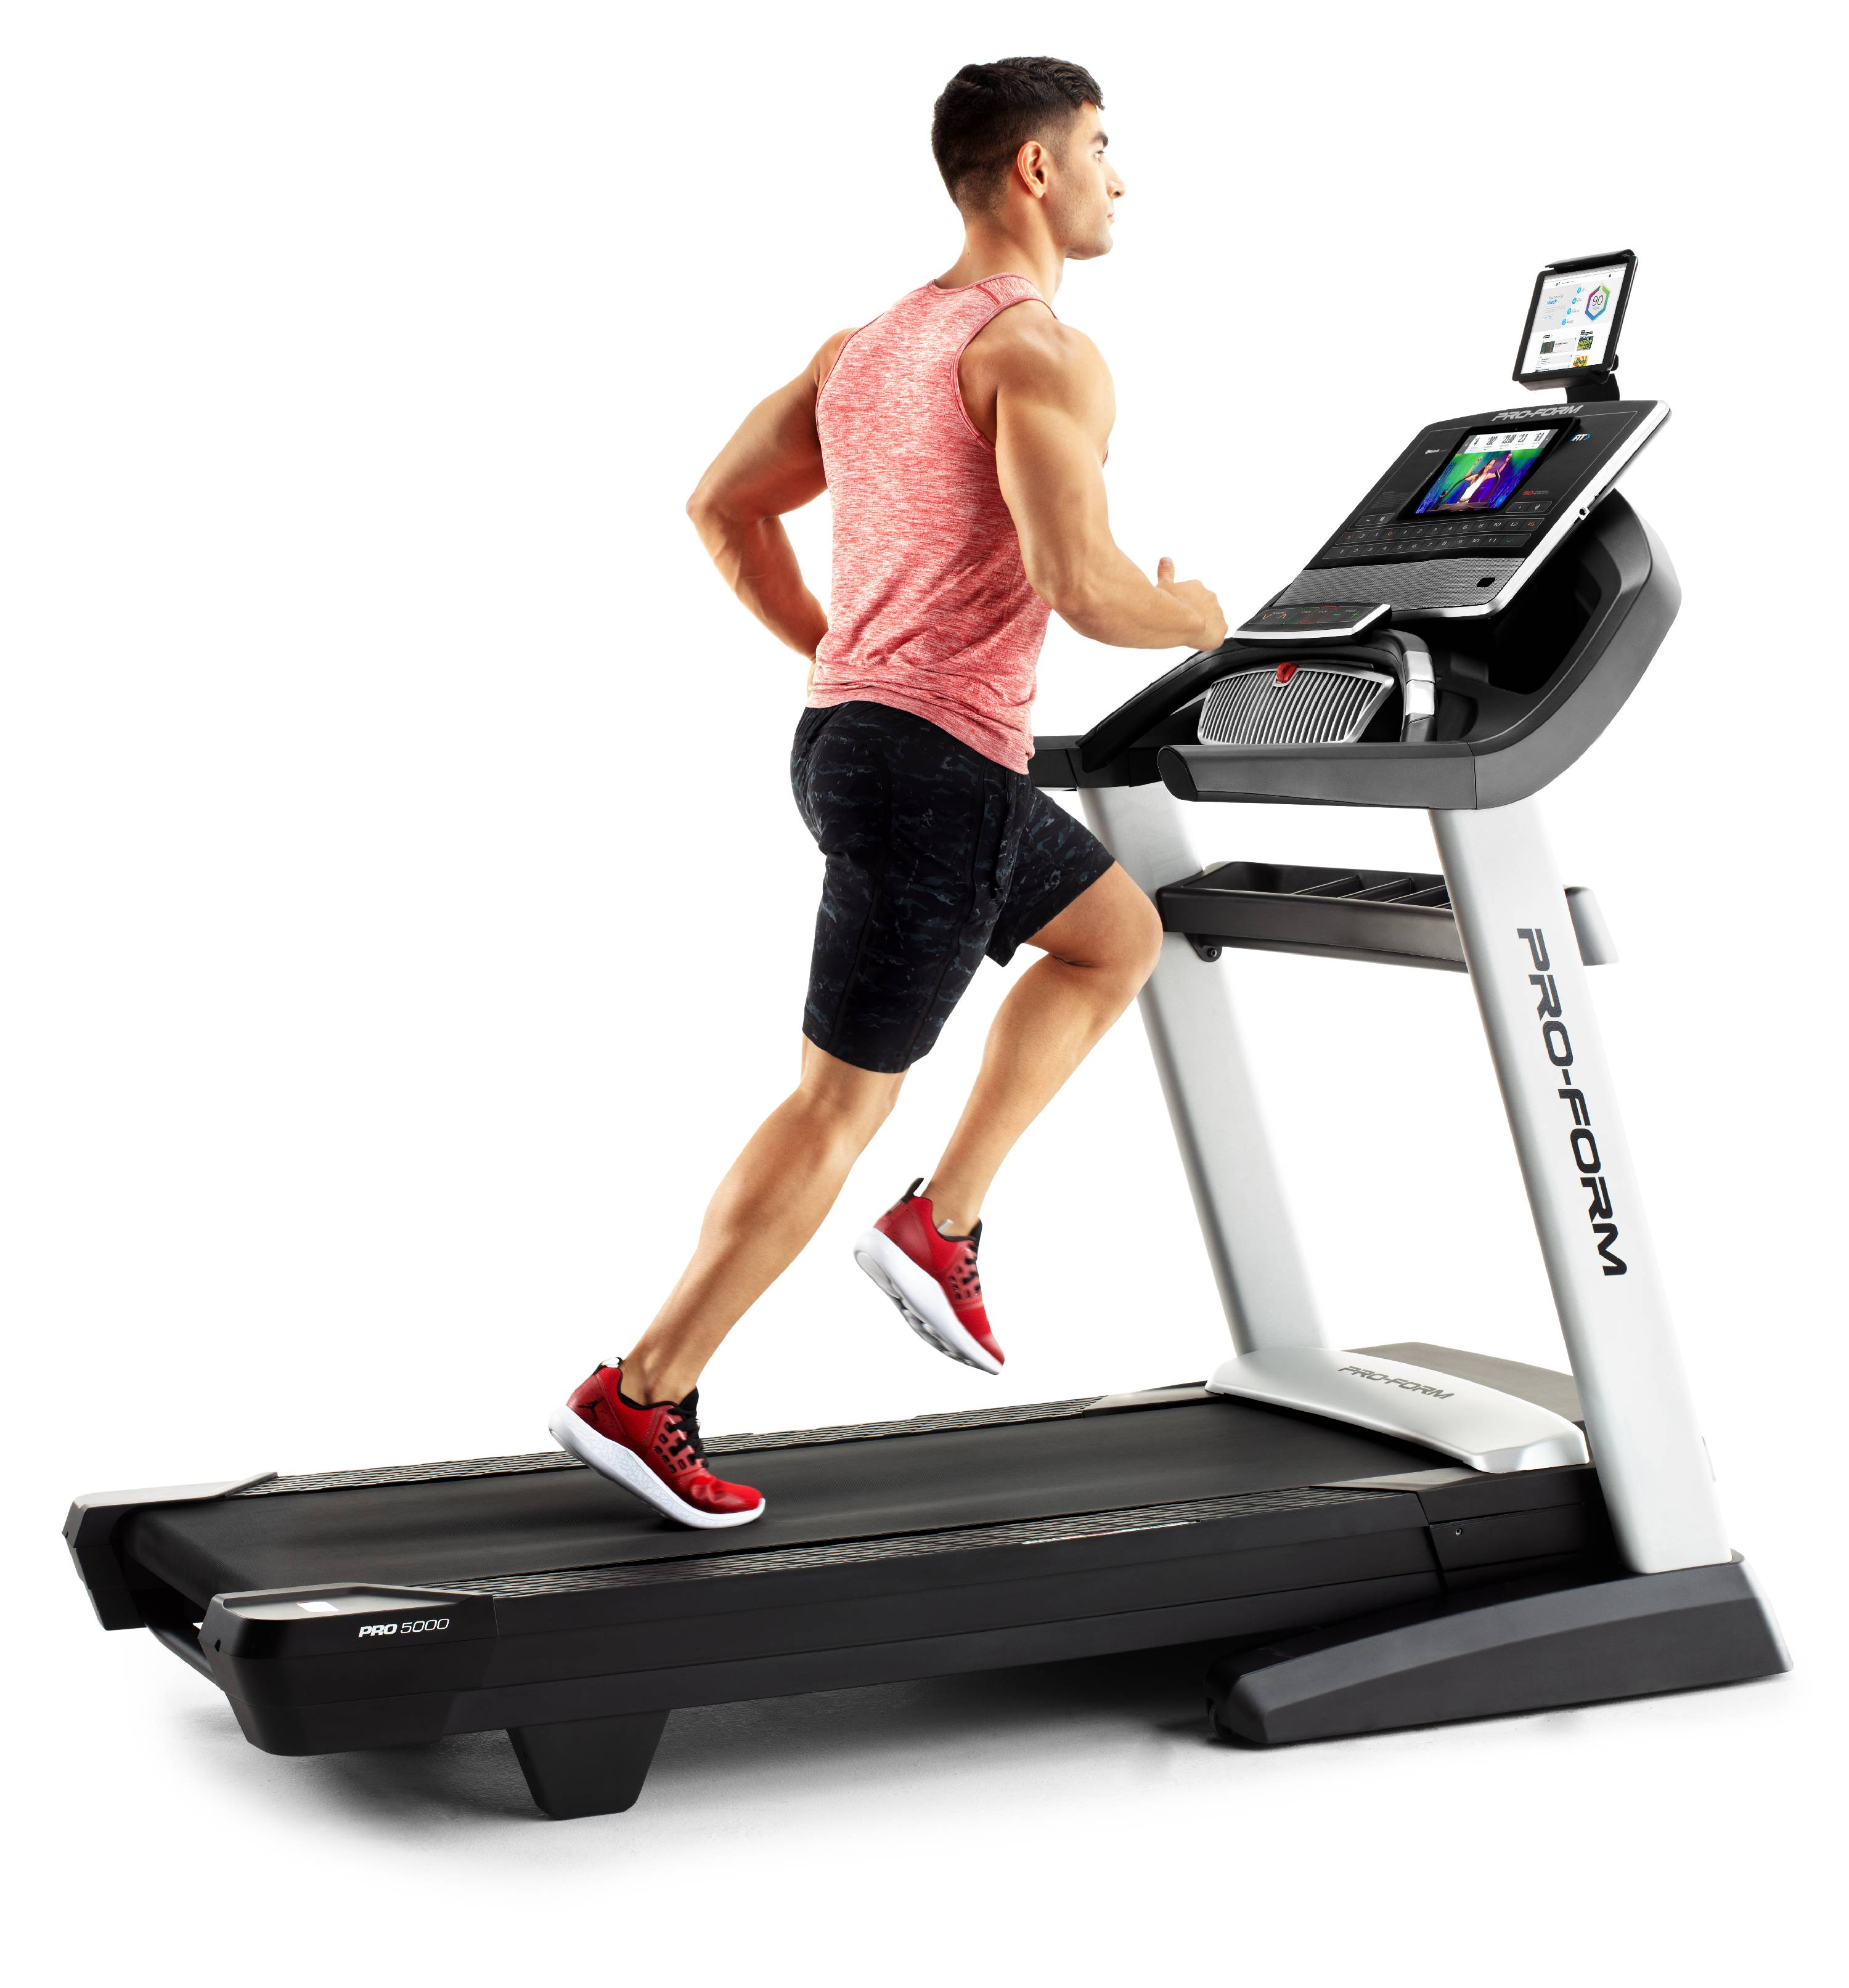 ProForm SMART Pro 5000 Treadmill, Includes 1 Year of Personal Training in Your Home